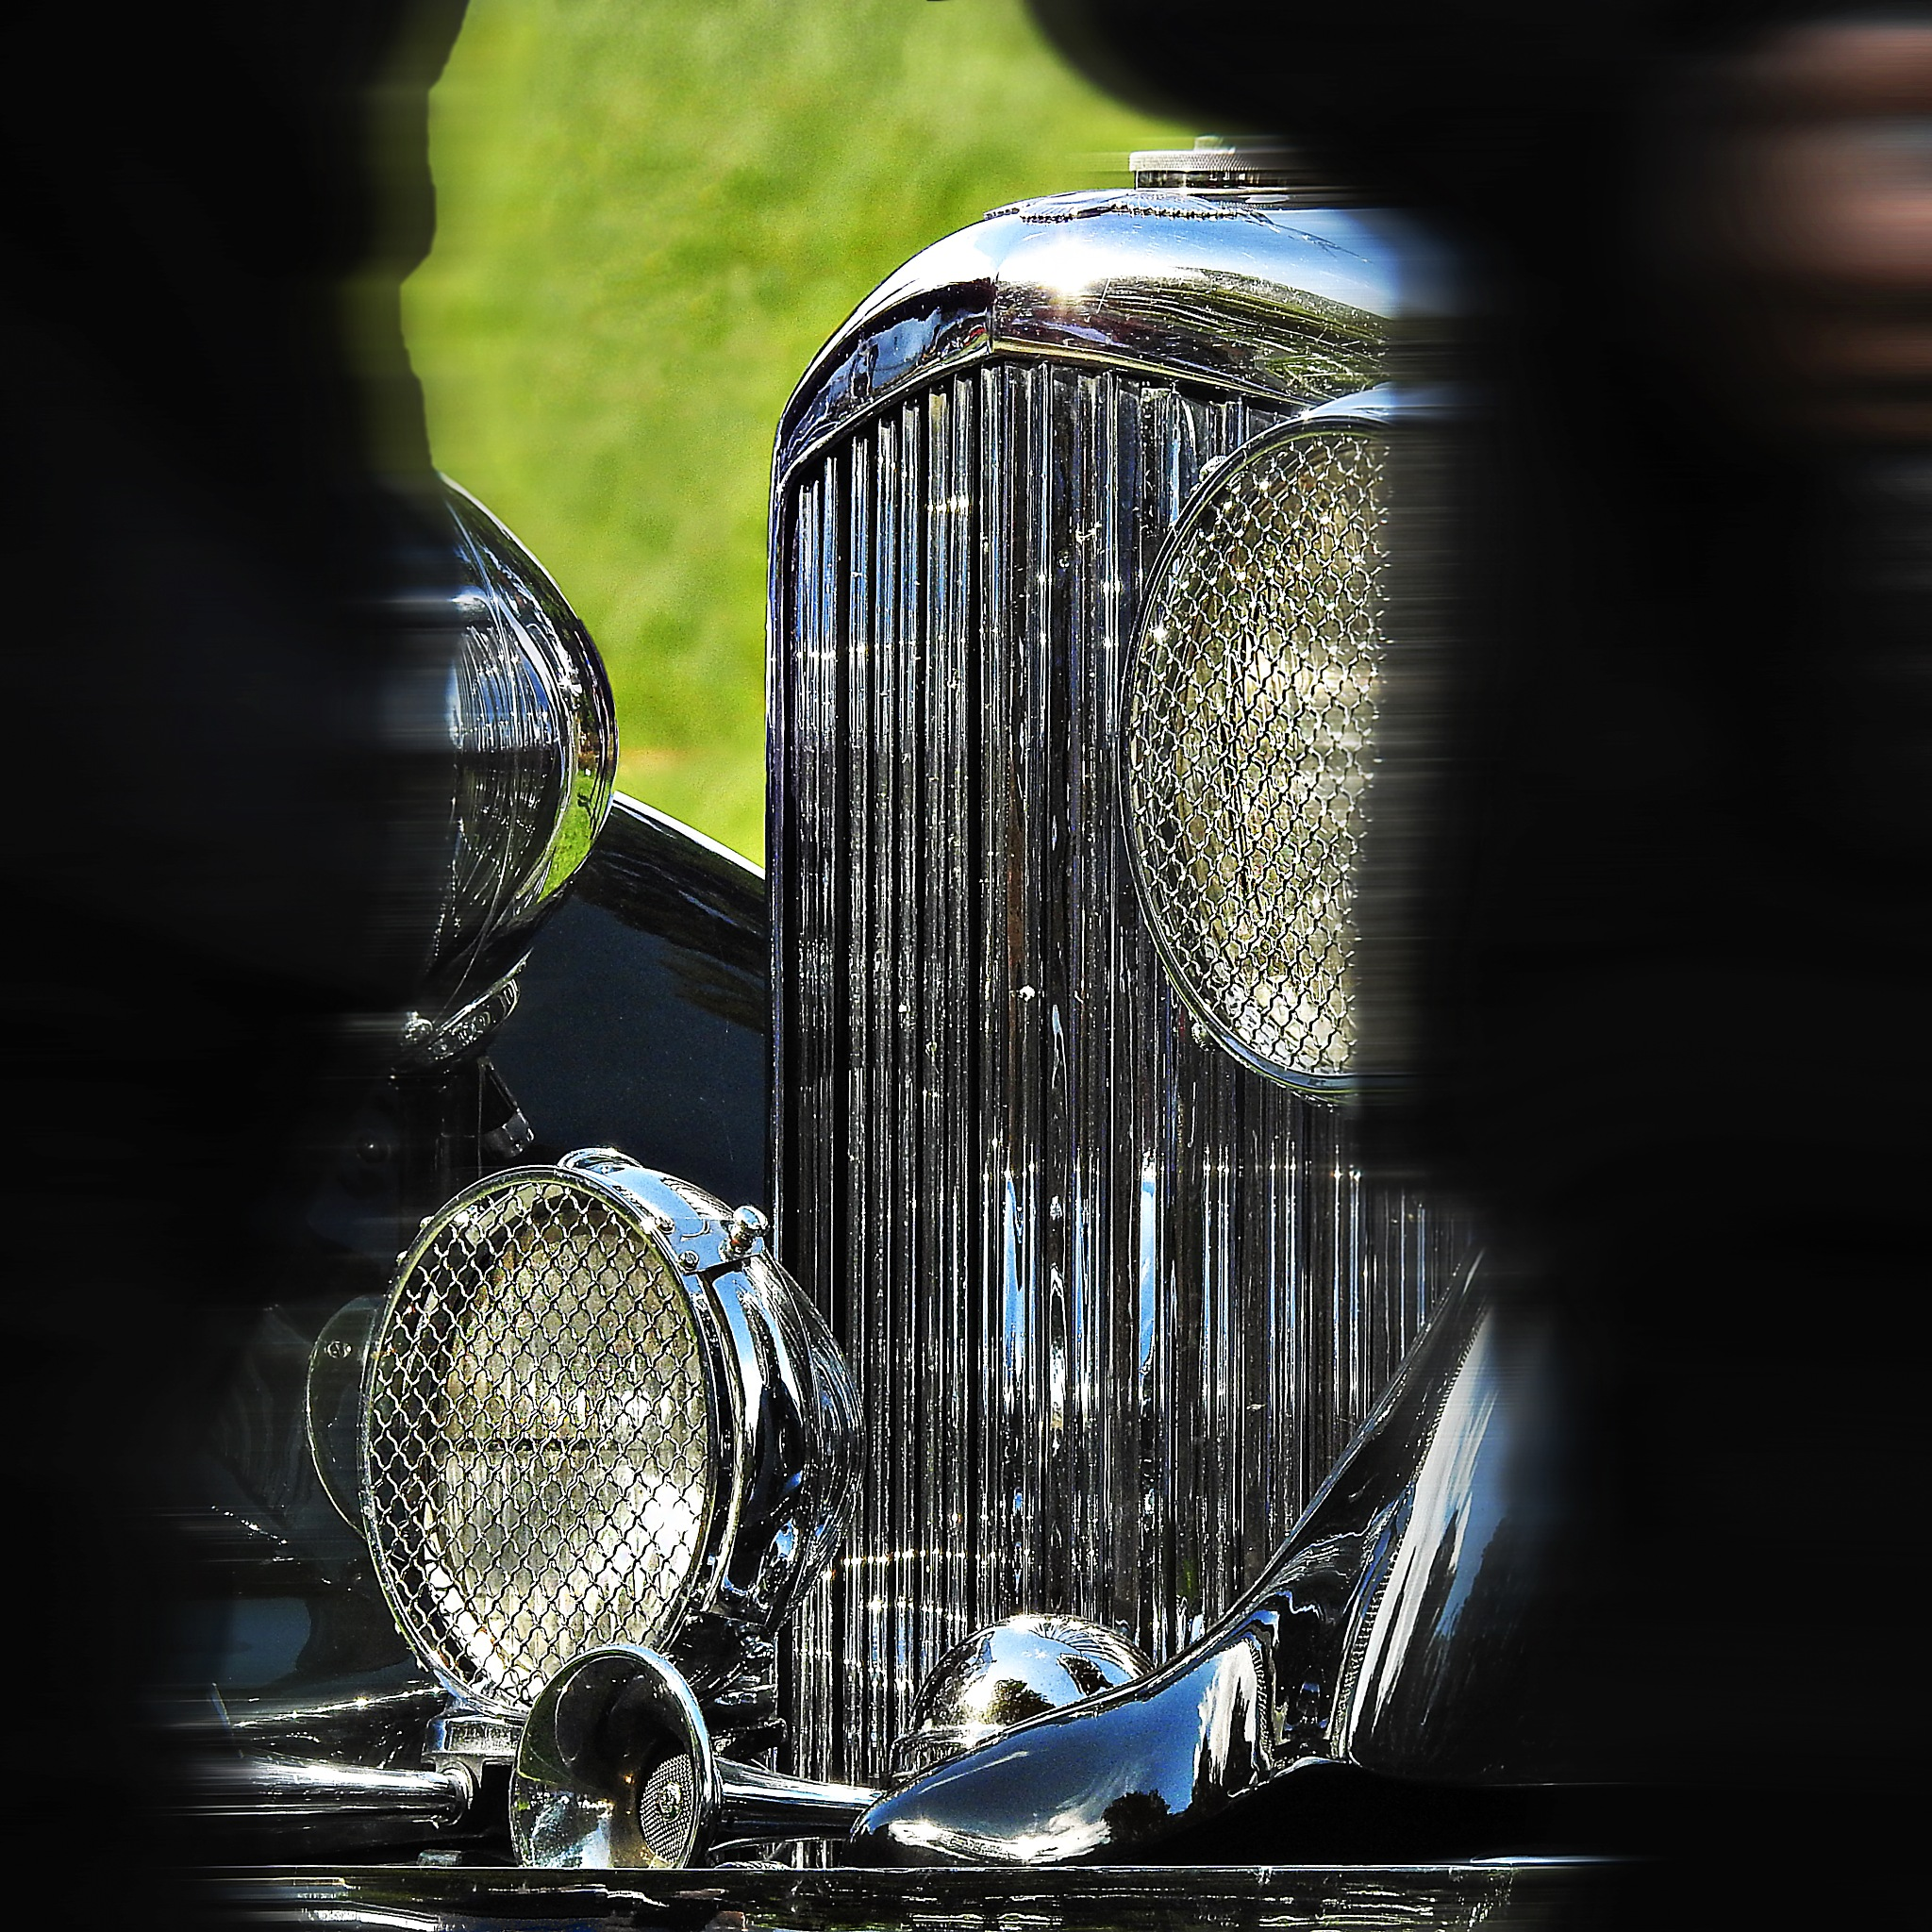 Bentley (Chantilly Automobile Show - France) by JMCtronic